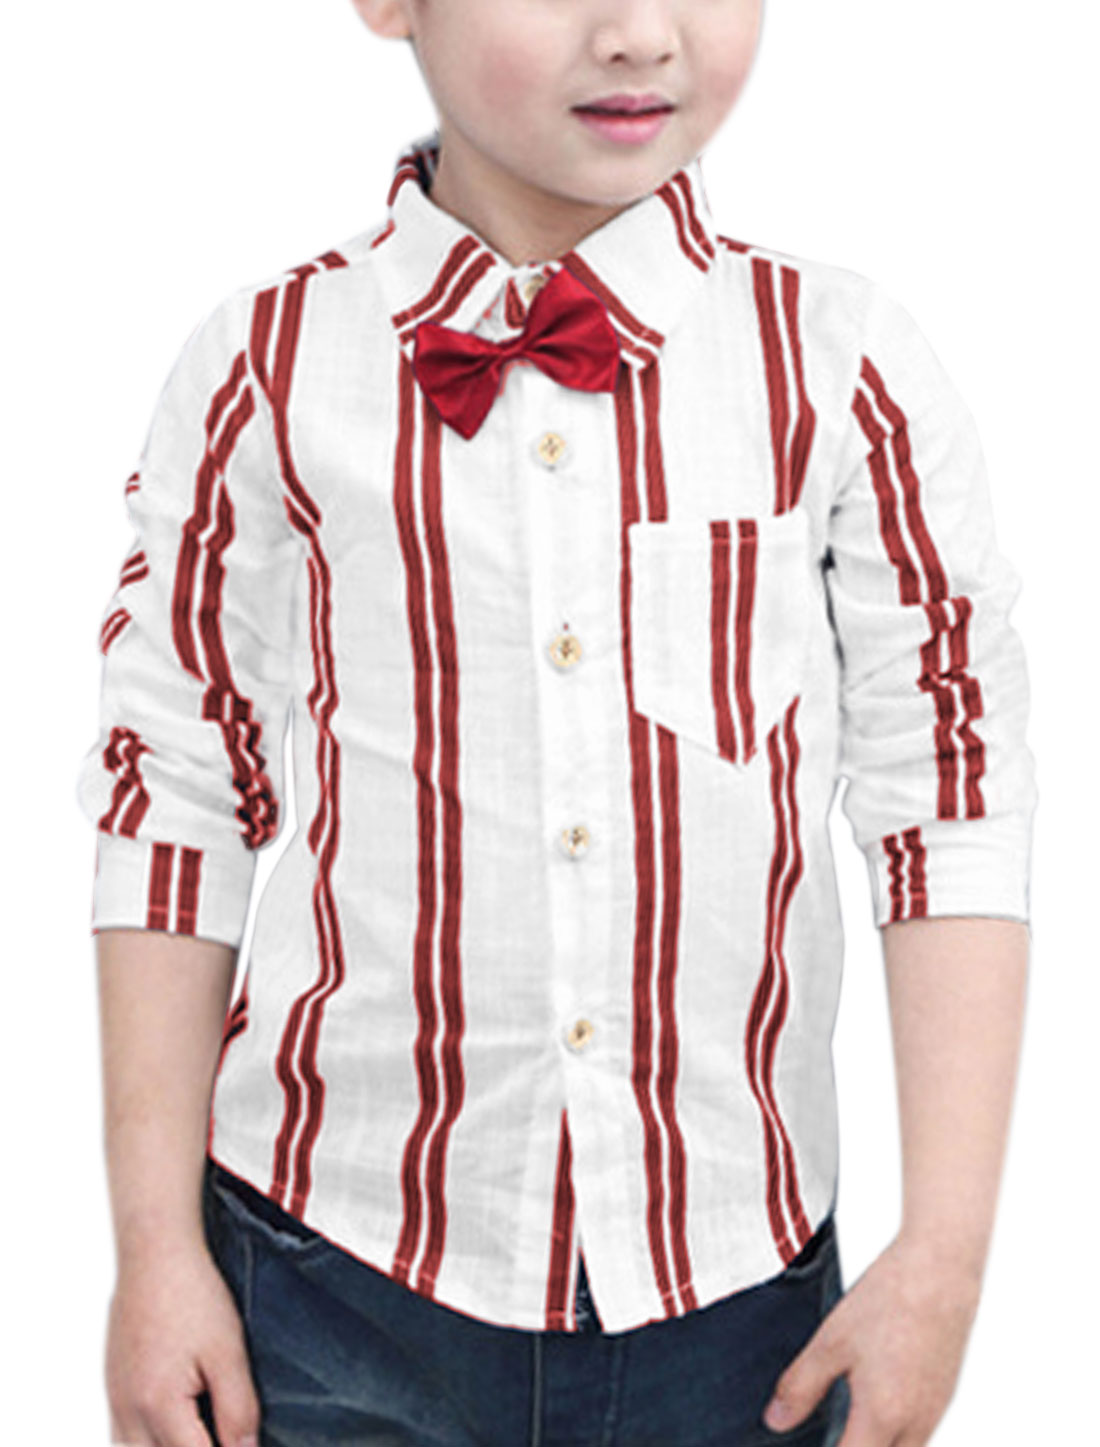 Boys One Pocket Bowknot Brooch Decor Stripes Shirt Red 8